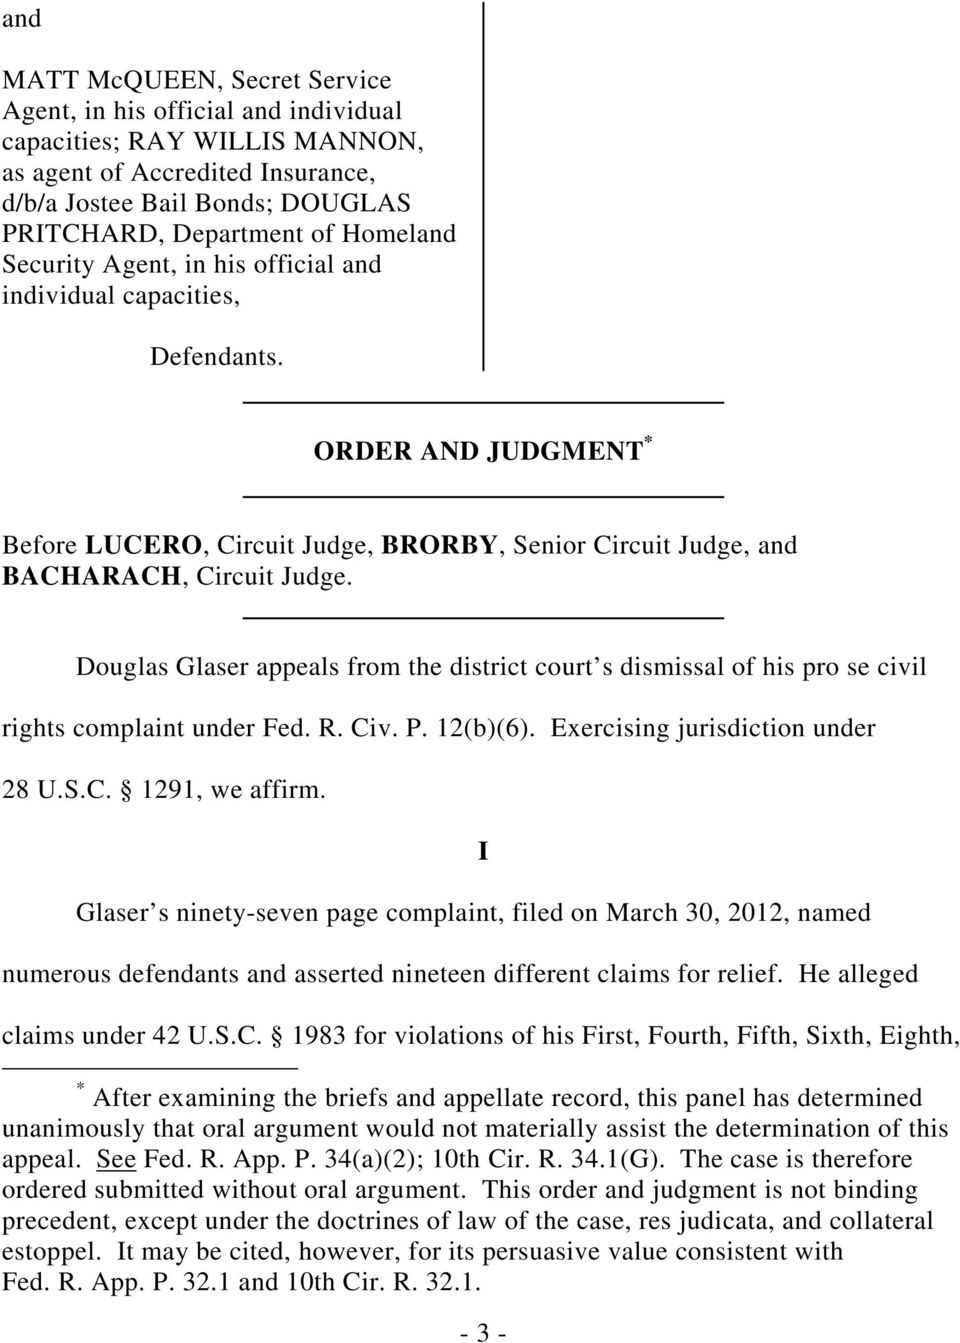 Douglas Glaser appeals from the district court s dismissal of his pro se civil rights complaint under Fed. R. Civ. P. 12(b)(6). Exercising jurisdiction under 28 U.S.C. 1291, we affirm.